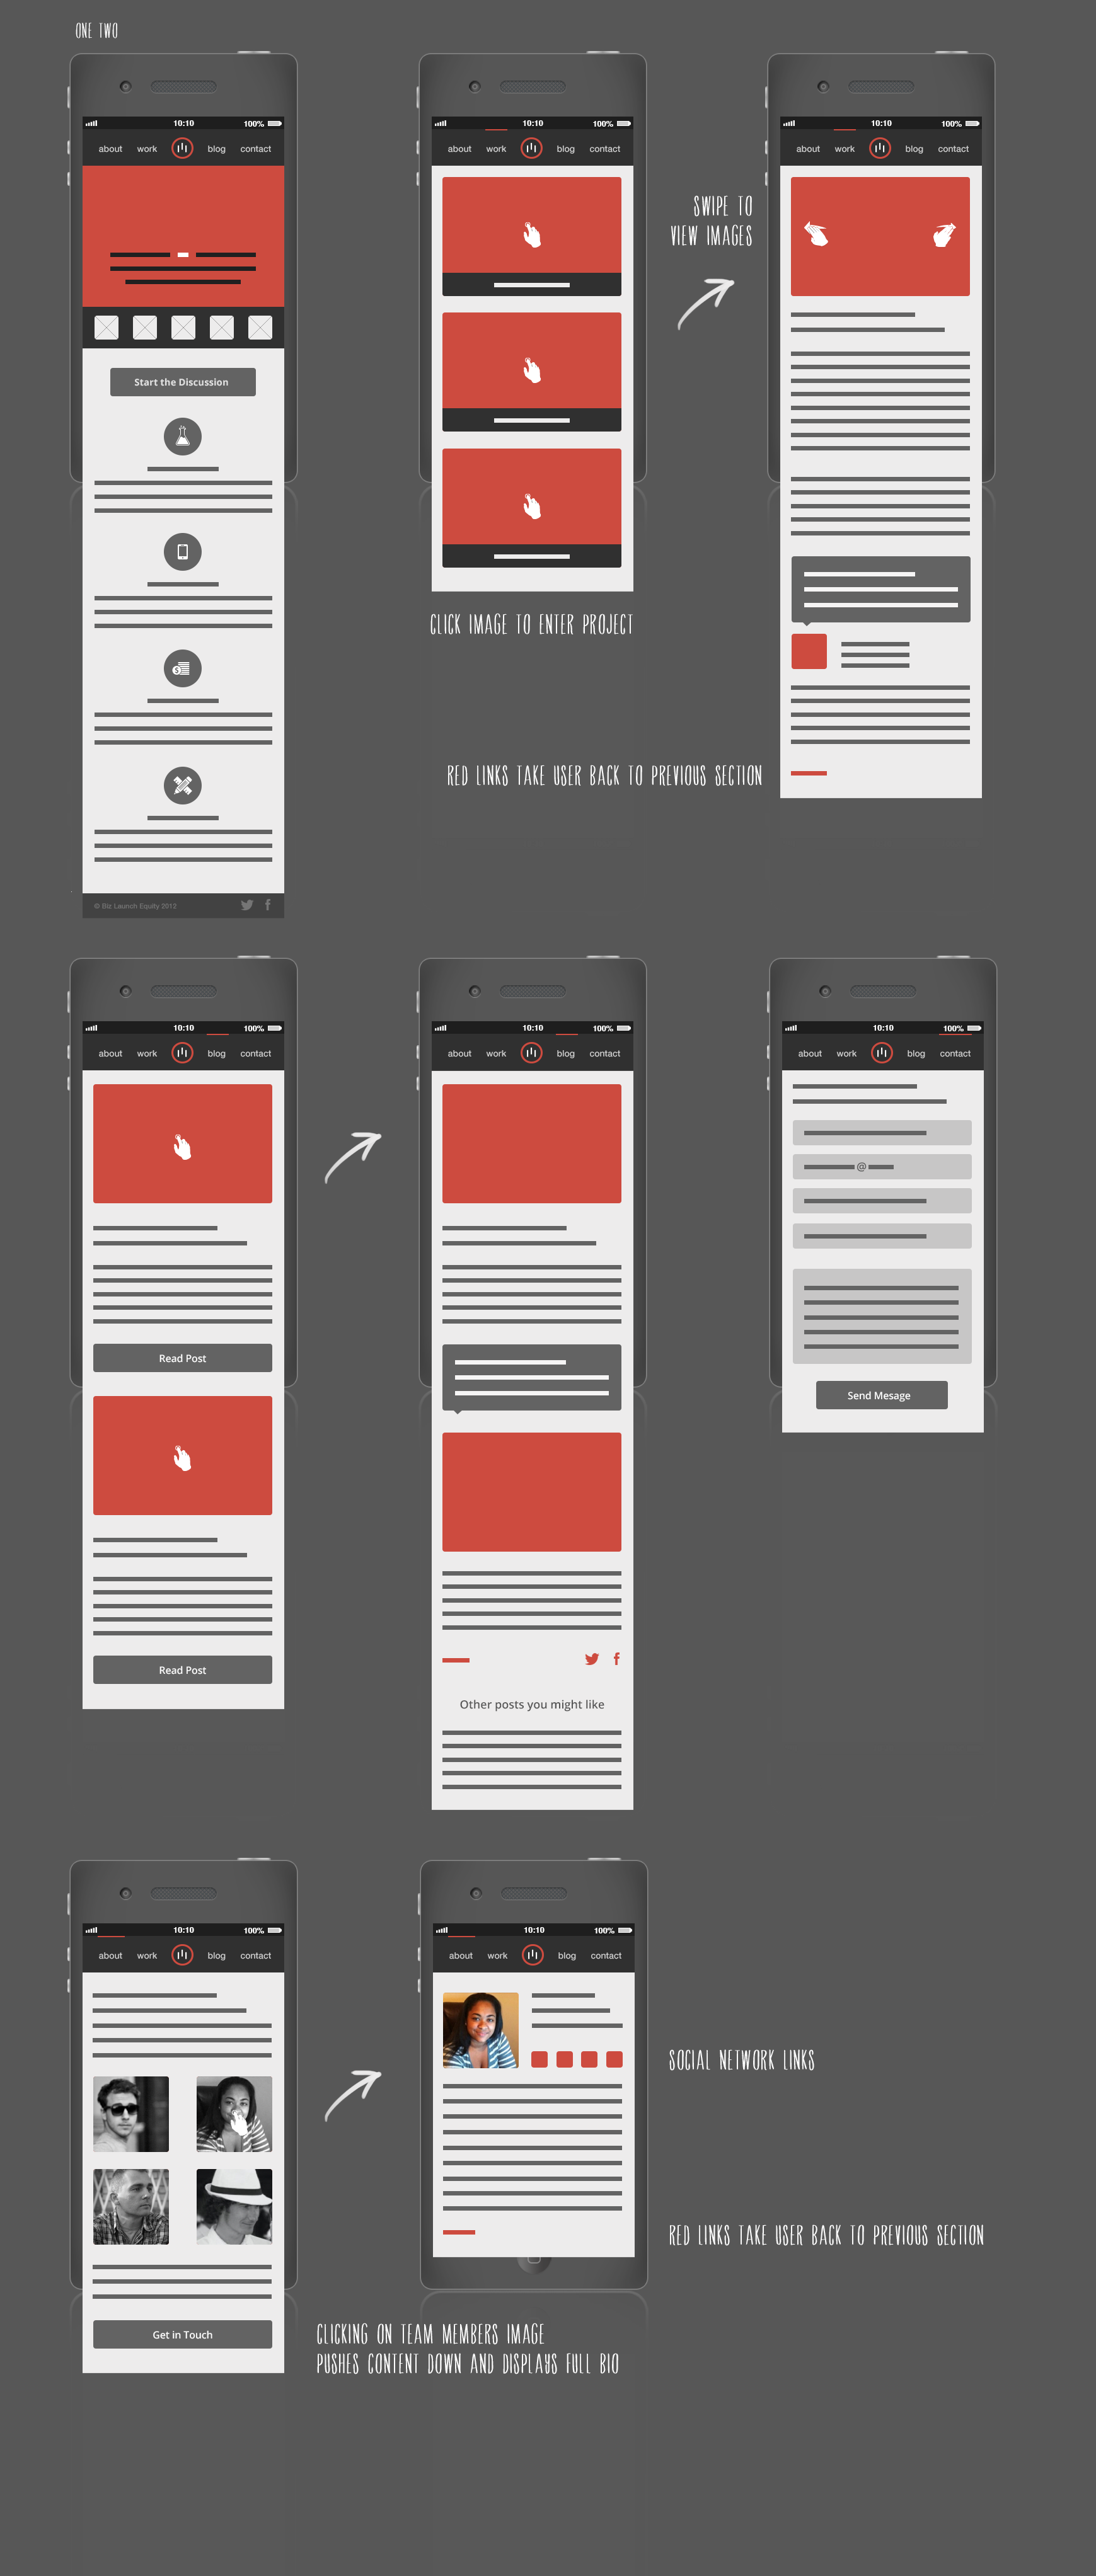 Responsive Web Design Vs Adaptive Web Design Which Should You Choose Read More On Our Website Https Wireframe Design Wireframe Web Design User Interface